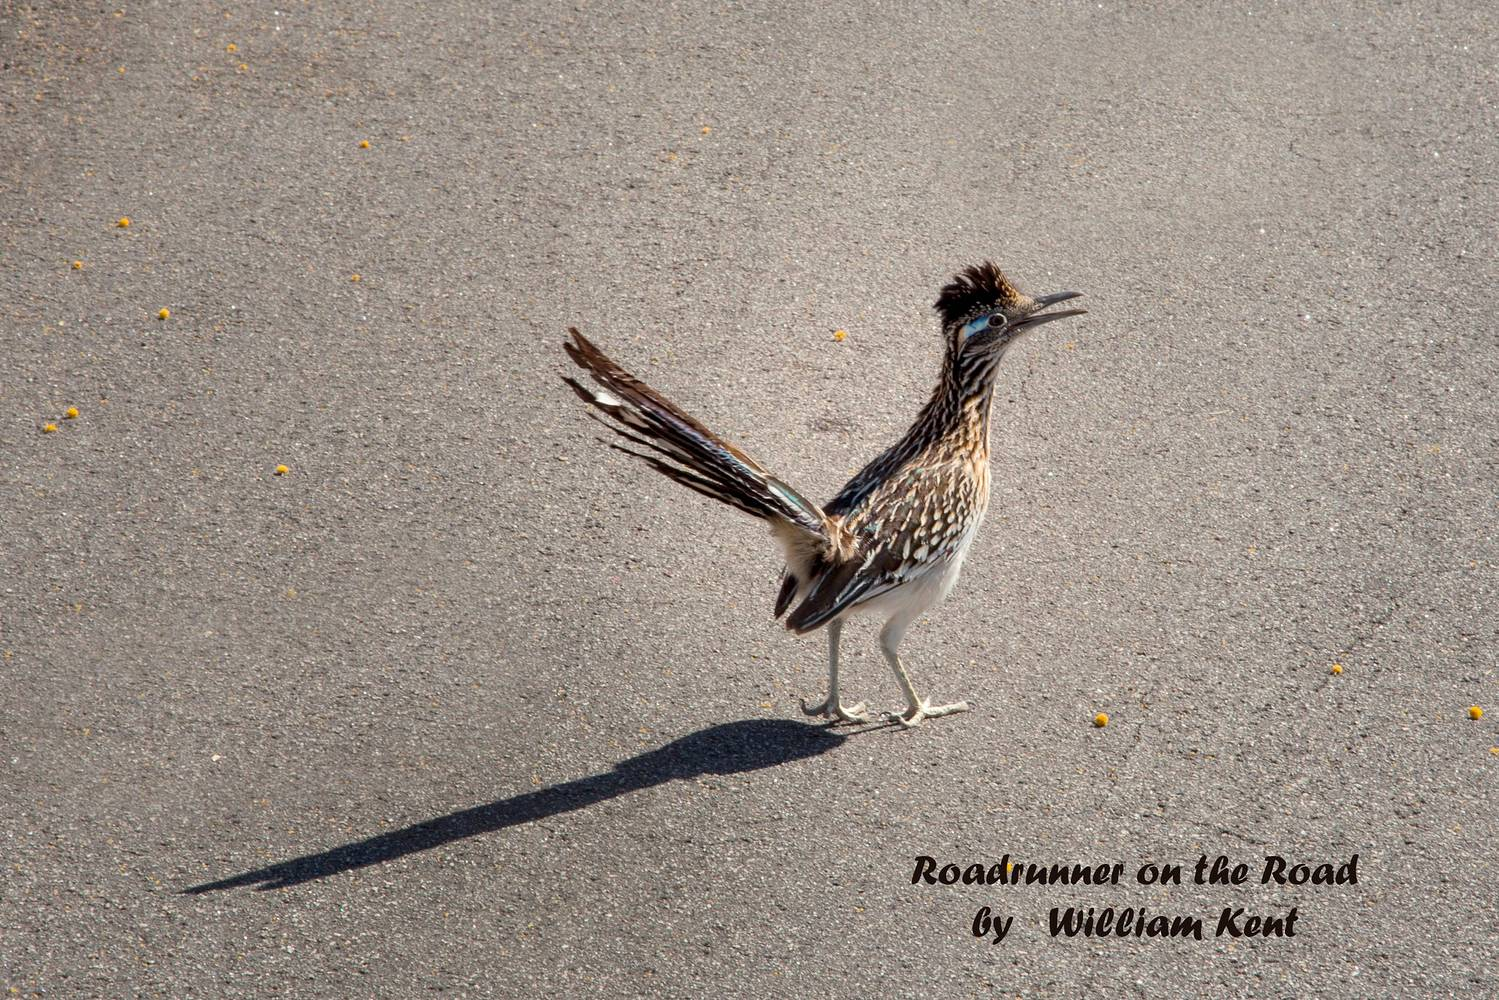 Roadrunner on the Road by William Kent